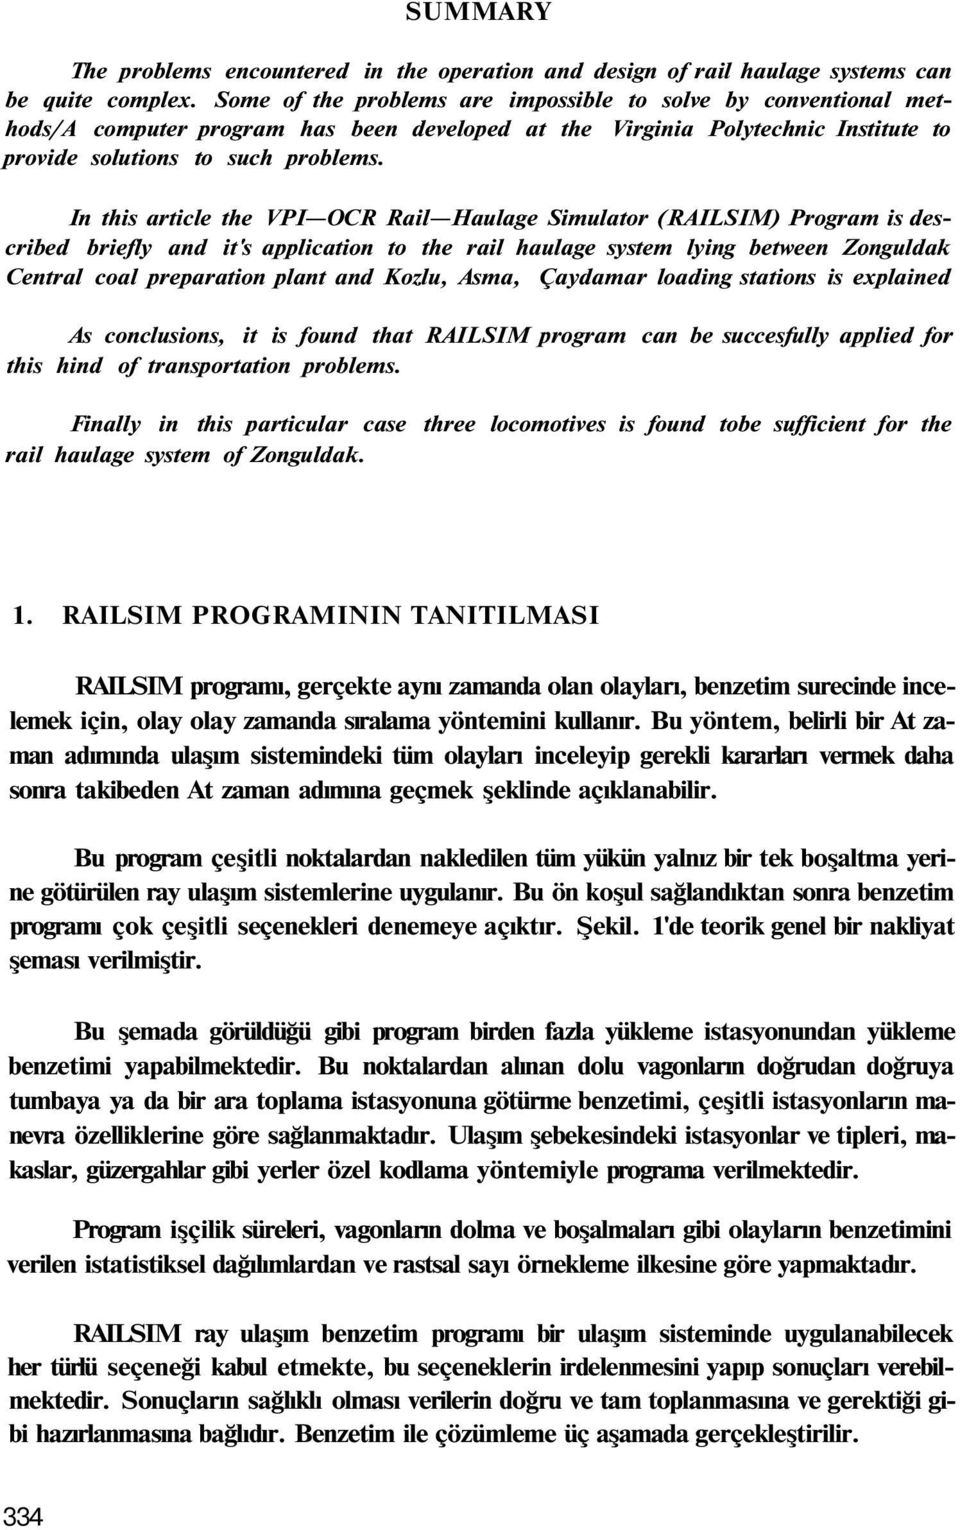 In this article the VPI OCR Rail Haulage Simulator (RAILSIM) Program is described briefly and it's application to the rail haulage system lying between Zonguldak Central coal preparation plant and